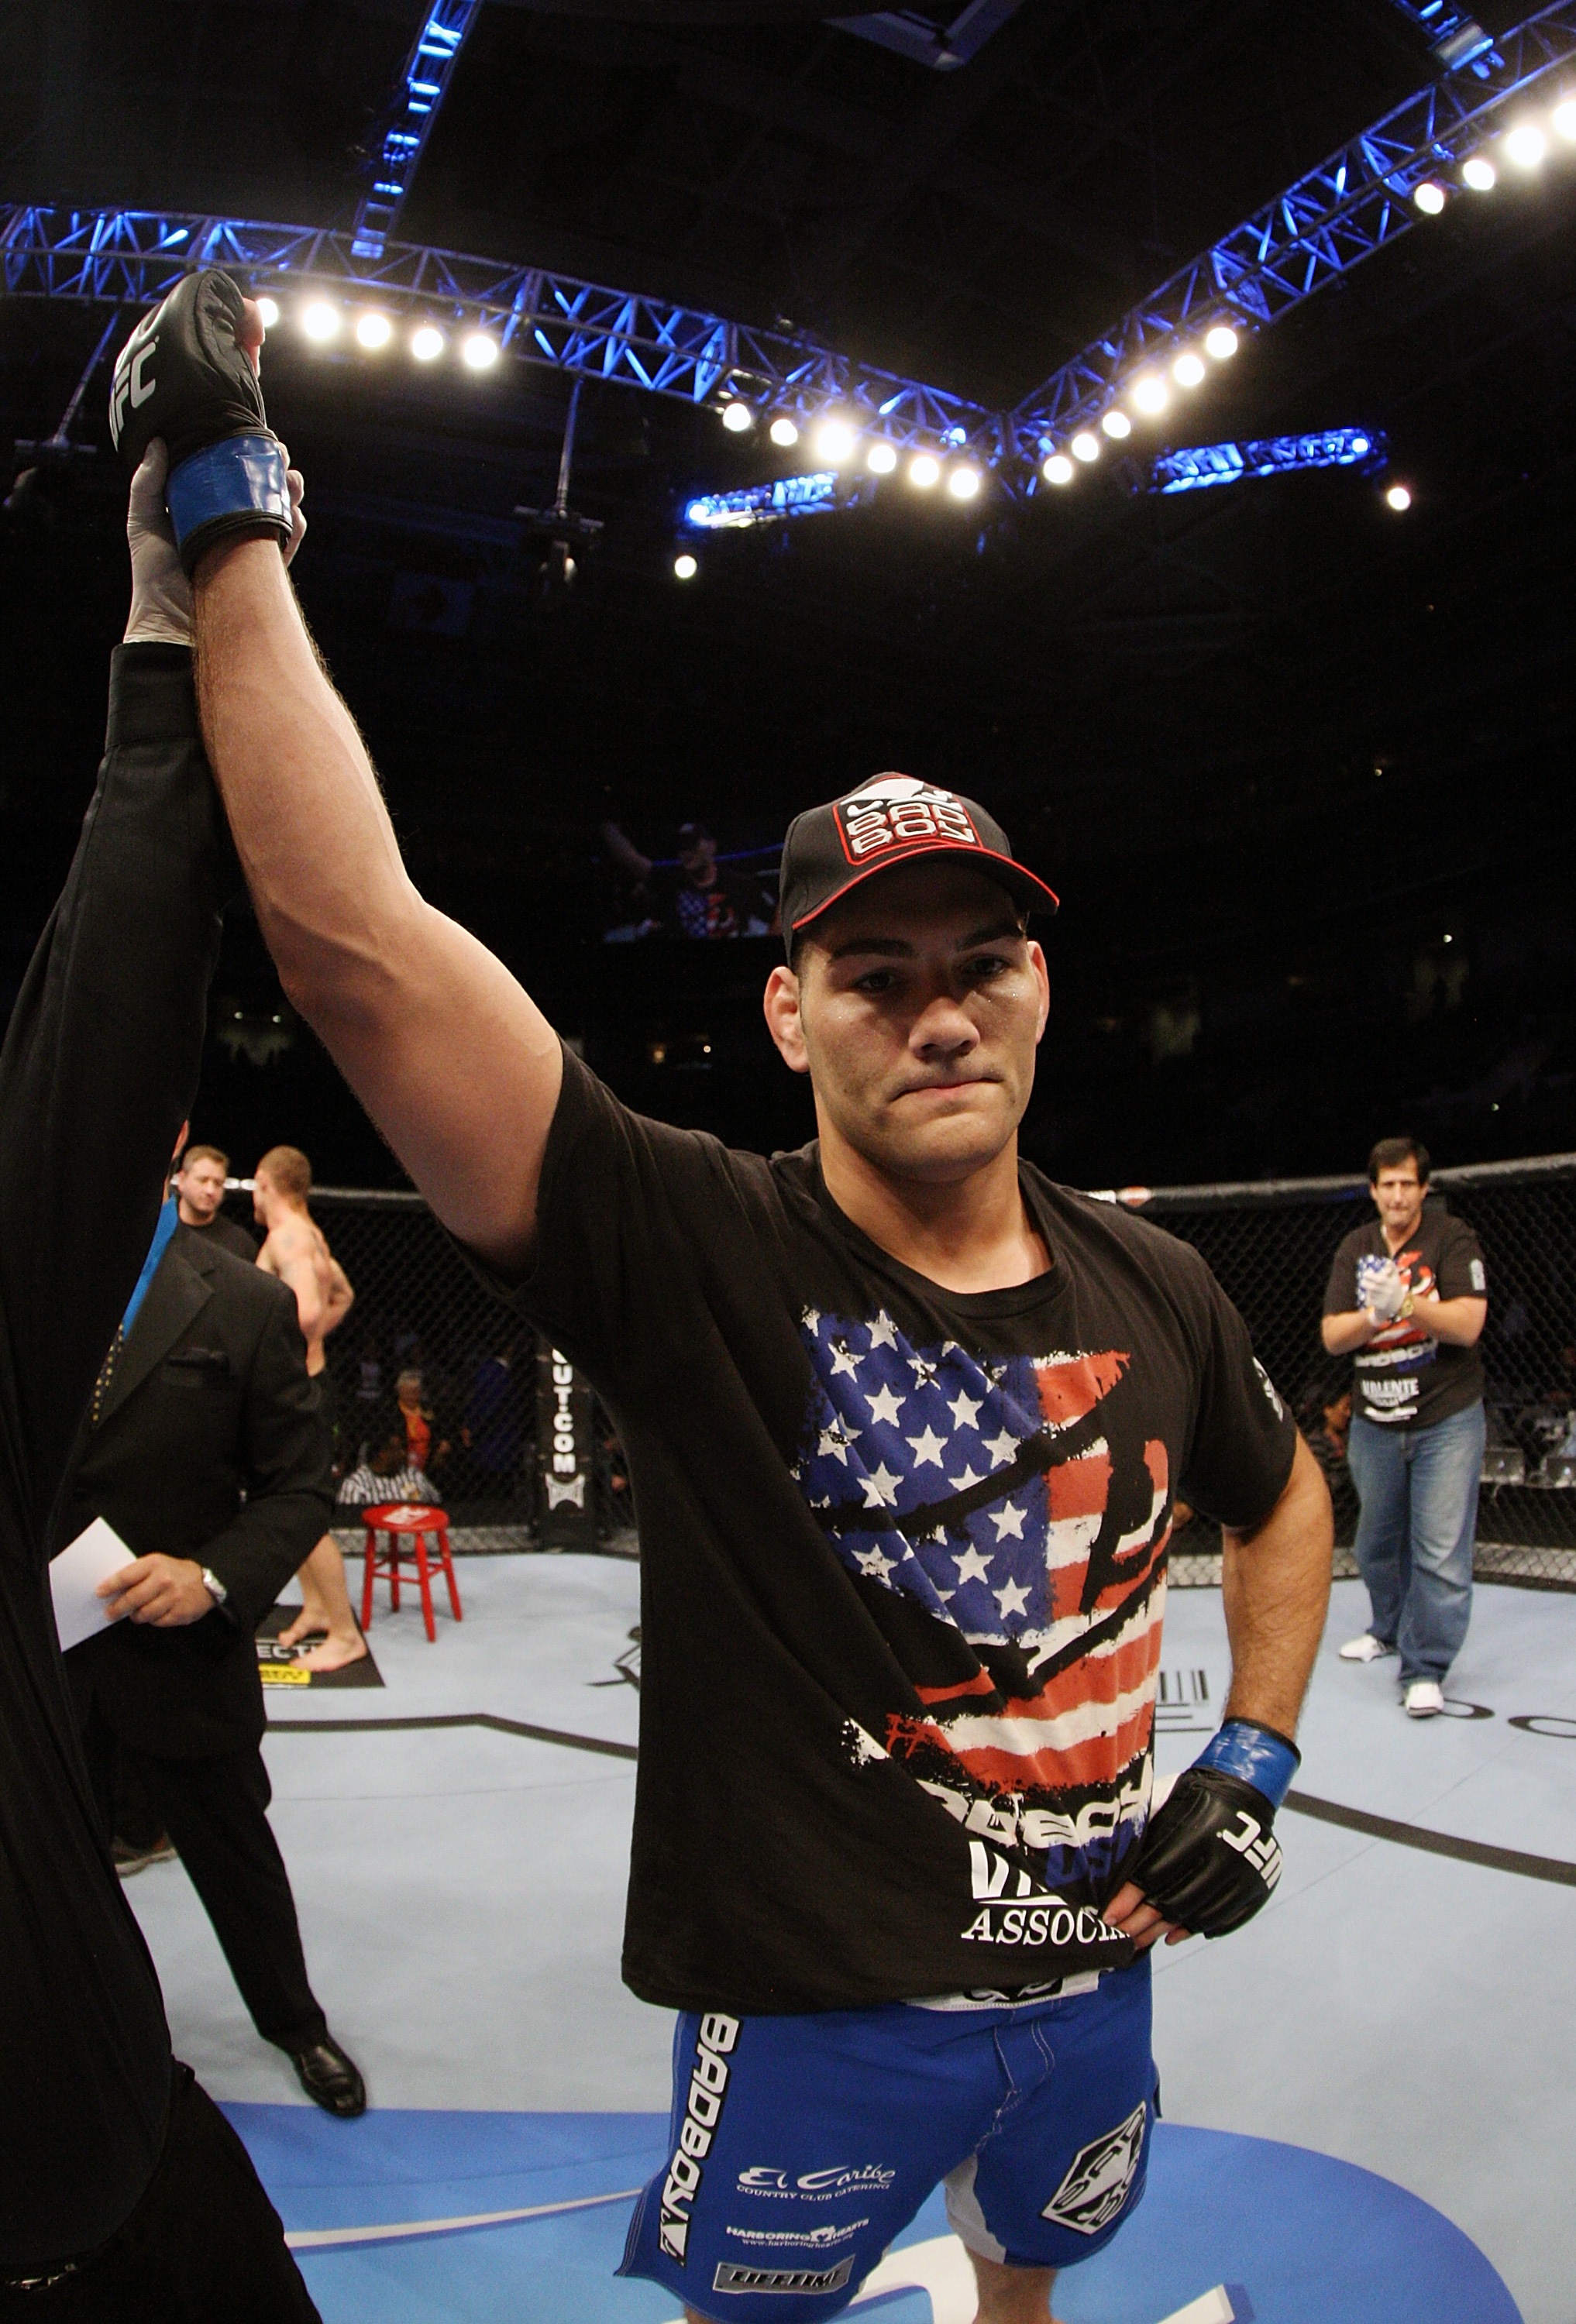 SAN JOSE, CA - NOVEMBER 19: Chris Weidman celebrates his win over Tom Lawlor  at the HP Pavilion on November 19, 2011 in San Jose, California.  (Photo by Josh Hedges/Zuffa LLC/Zuffa LLC via Getty Images)